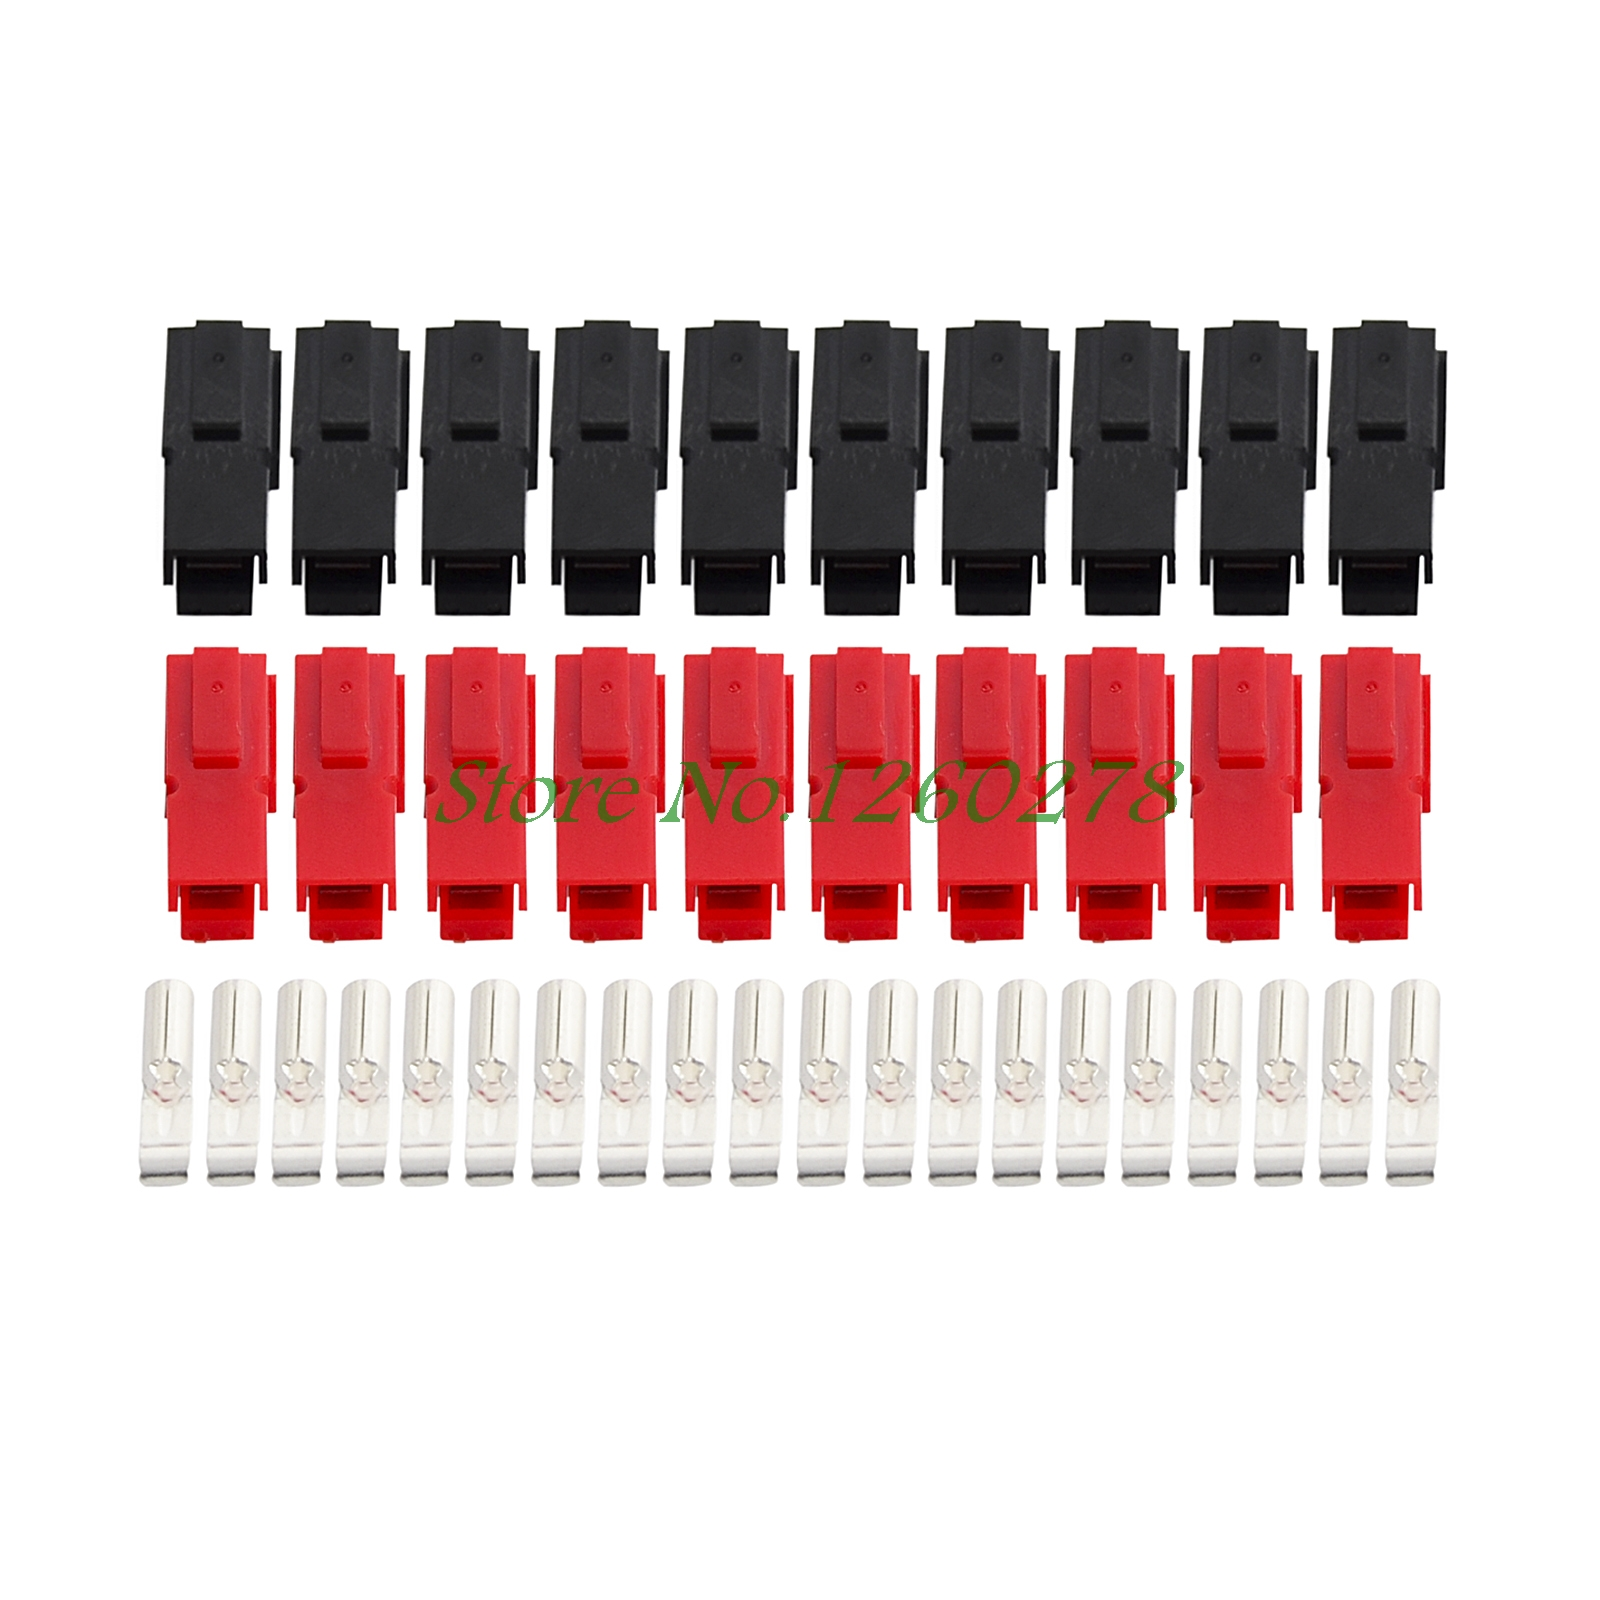 10 Pairs 30A Amp 600V Power Marine Connector Pole Red Black For Anderson Powerpole mikado temptation pole 600